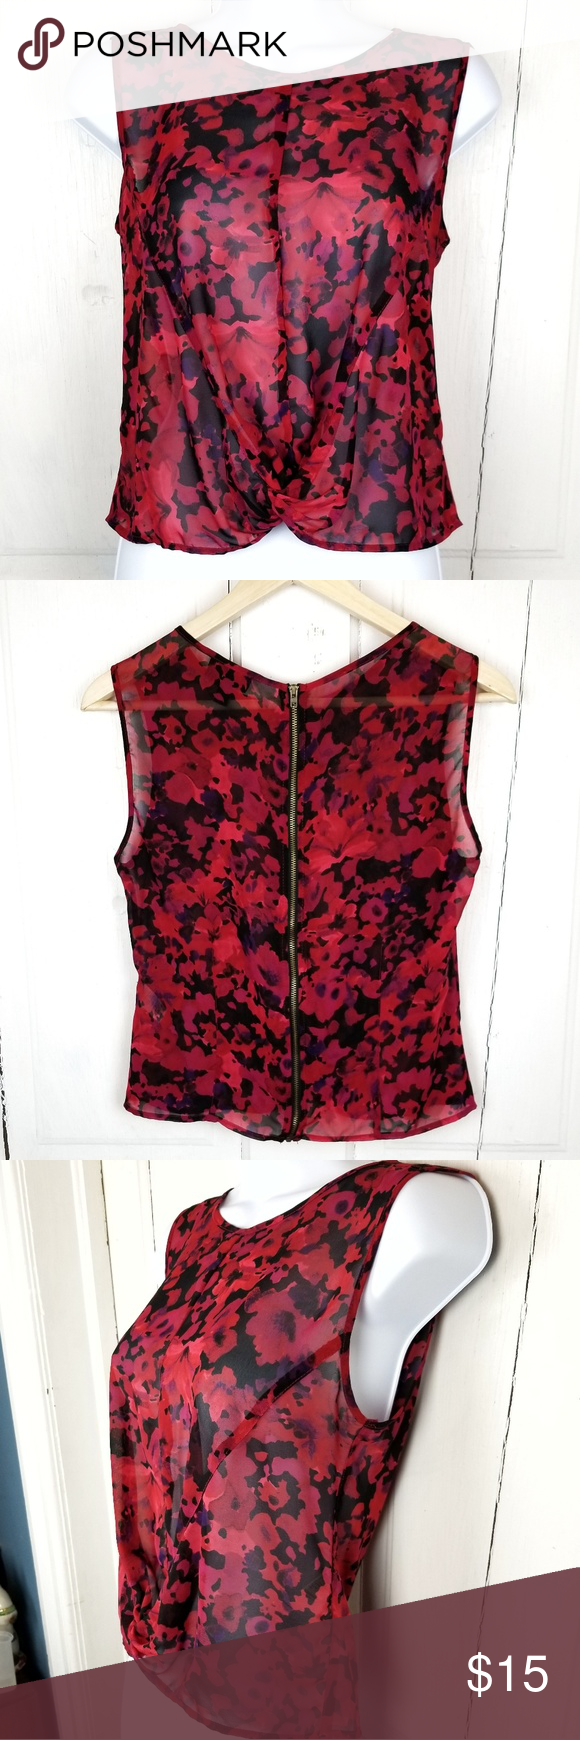 944d4b6f8335ee Topshop Sleeveless Blouse Sheer